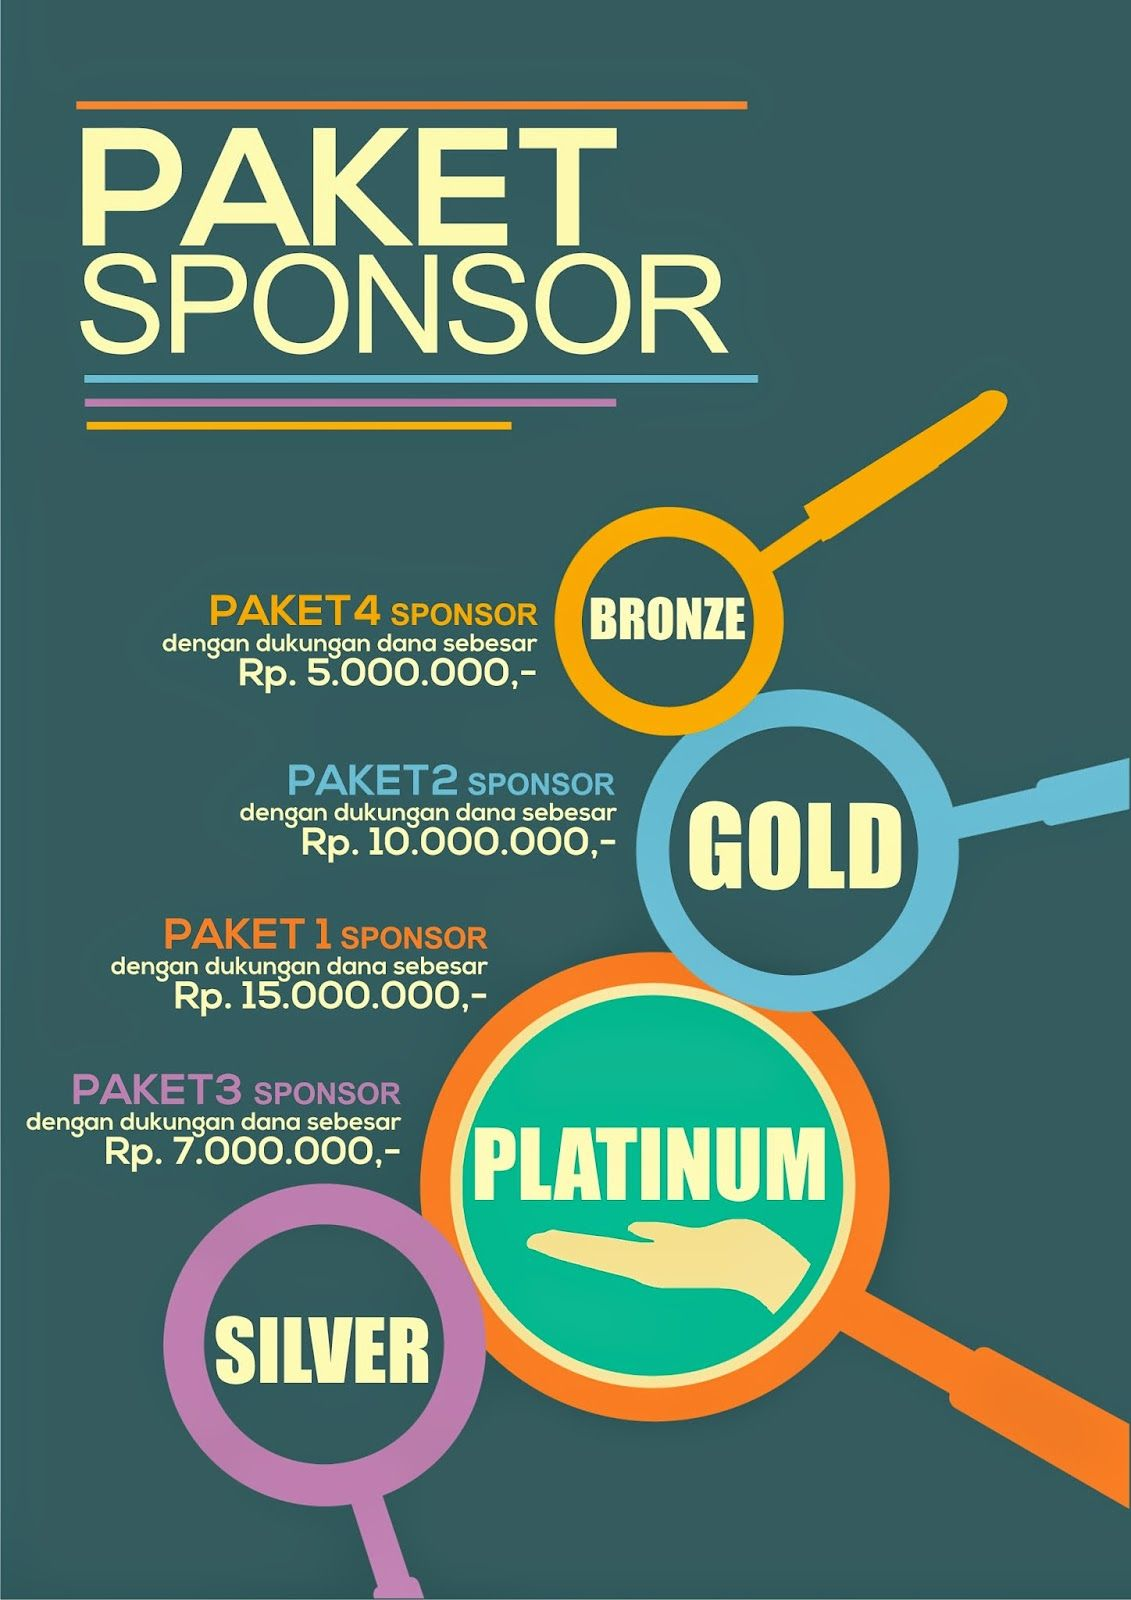 Sponsorship proposal design